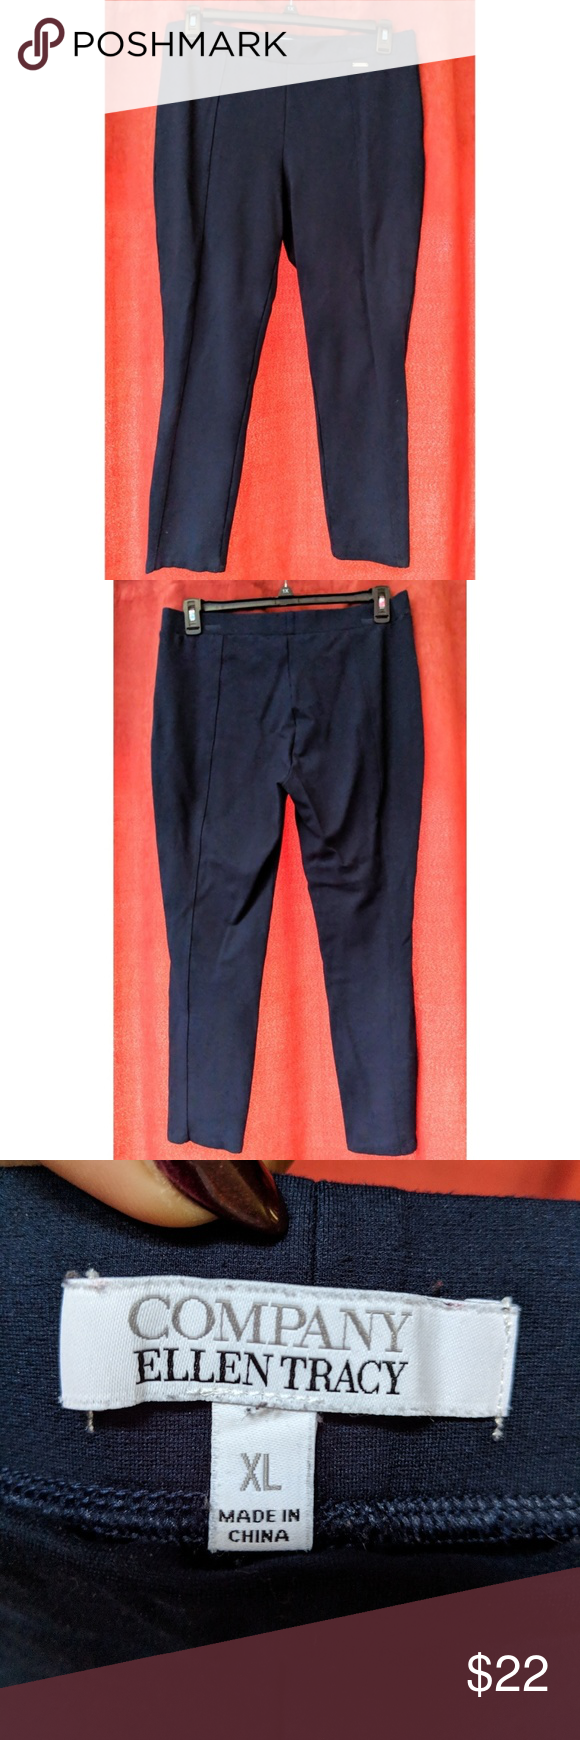 ae3fb0096d74e Pre-loved, but still in great condition! Size XL. Navy blue in color. Seamed  design. Slim fit. Elastic waist. Nice pants! Ellen Tracy Pants Skinny